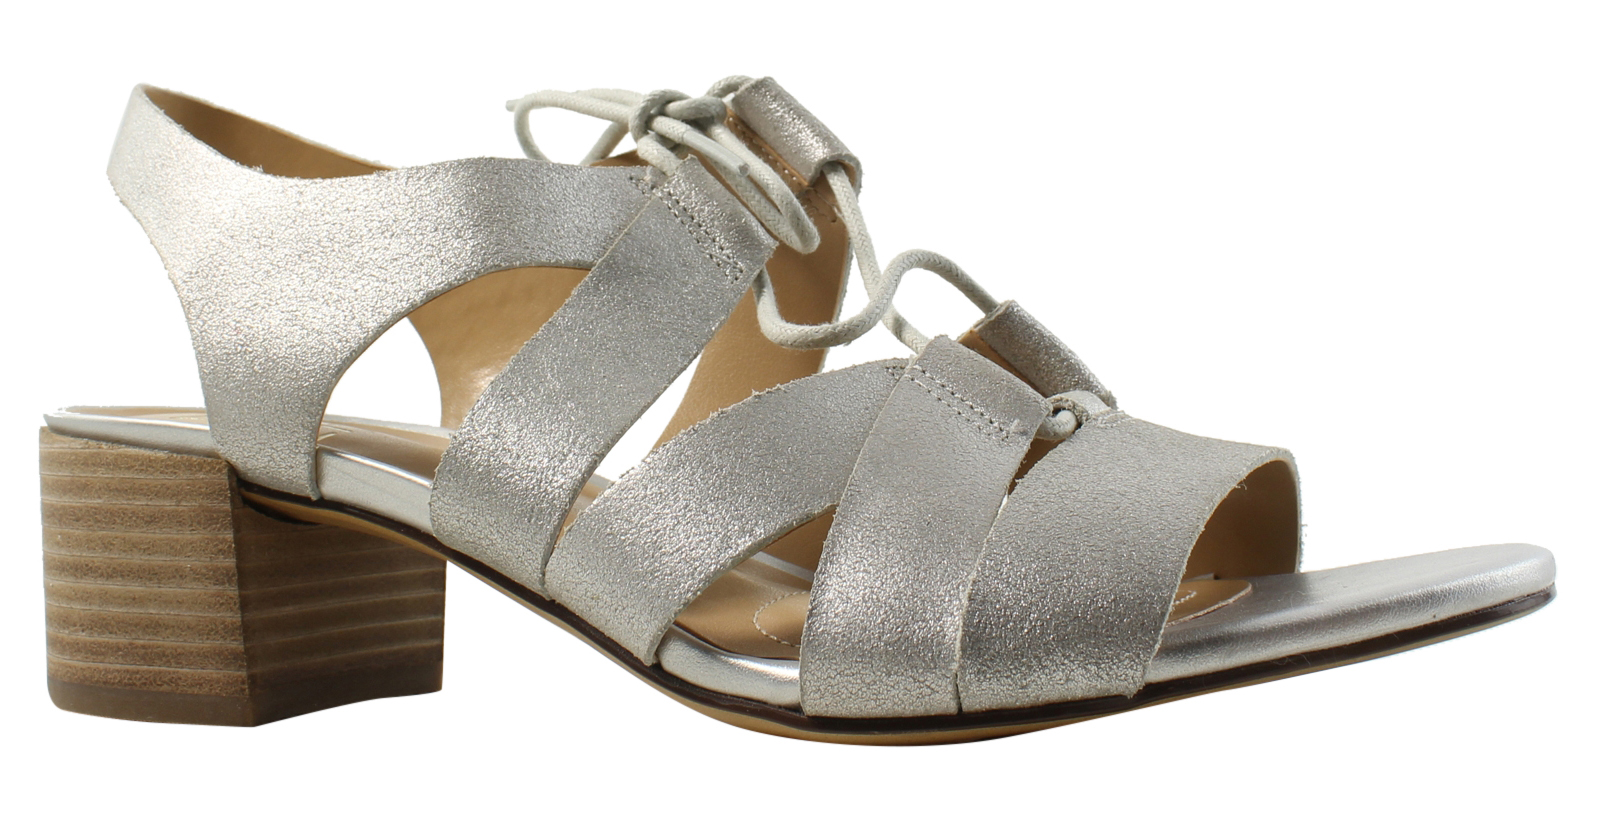 1ae631890137 Naturalizer Womens Silver Ankle Strap Sandals Size 7 (335603)